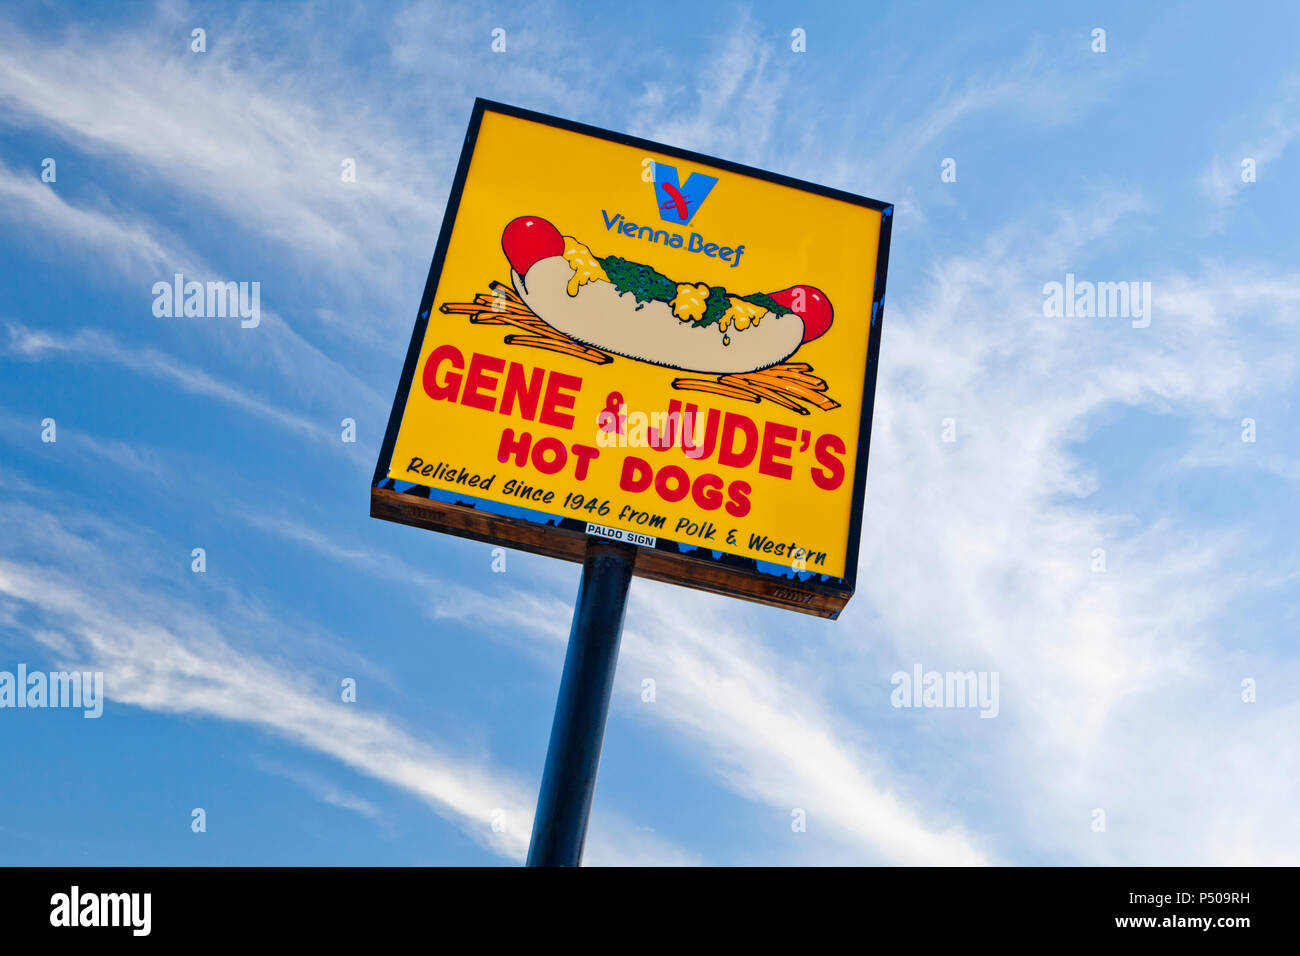 Gene & Jude's famous for Hot Dogs, Chicago since 1946 - Stock Image